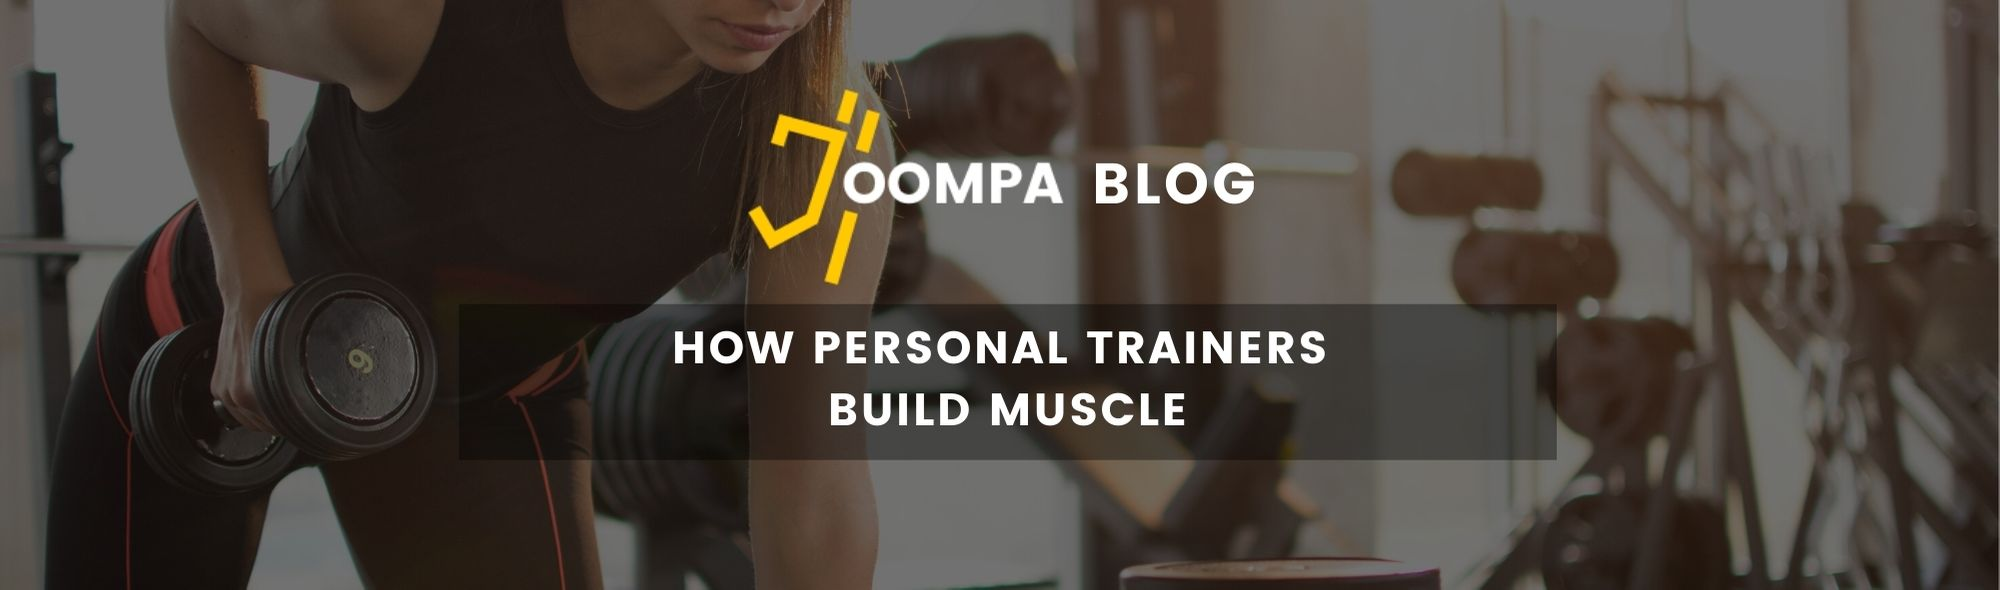 How Personal Trainers Build Muscle